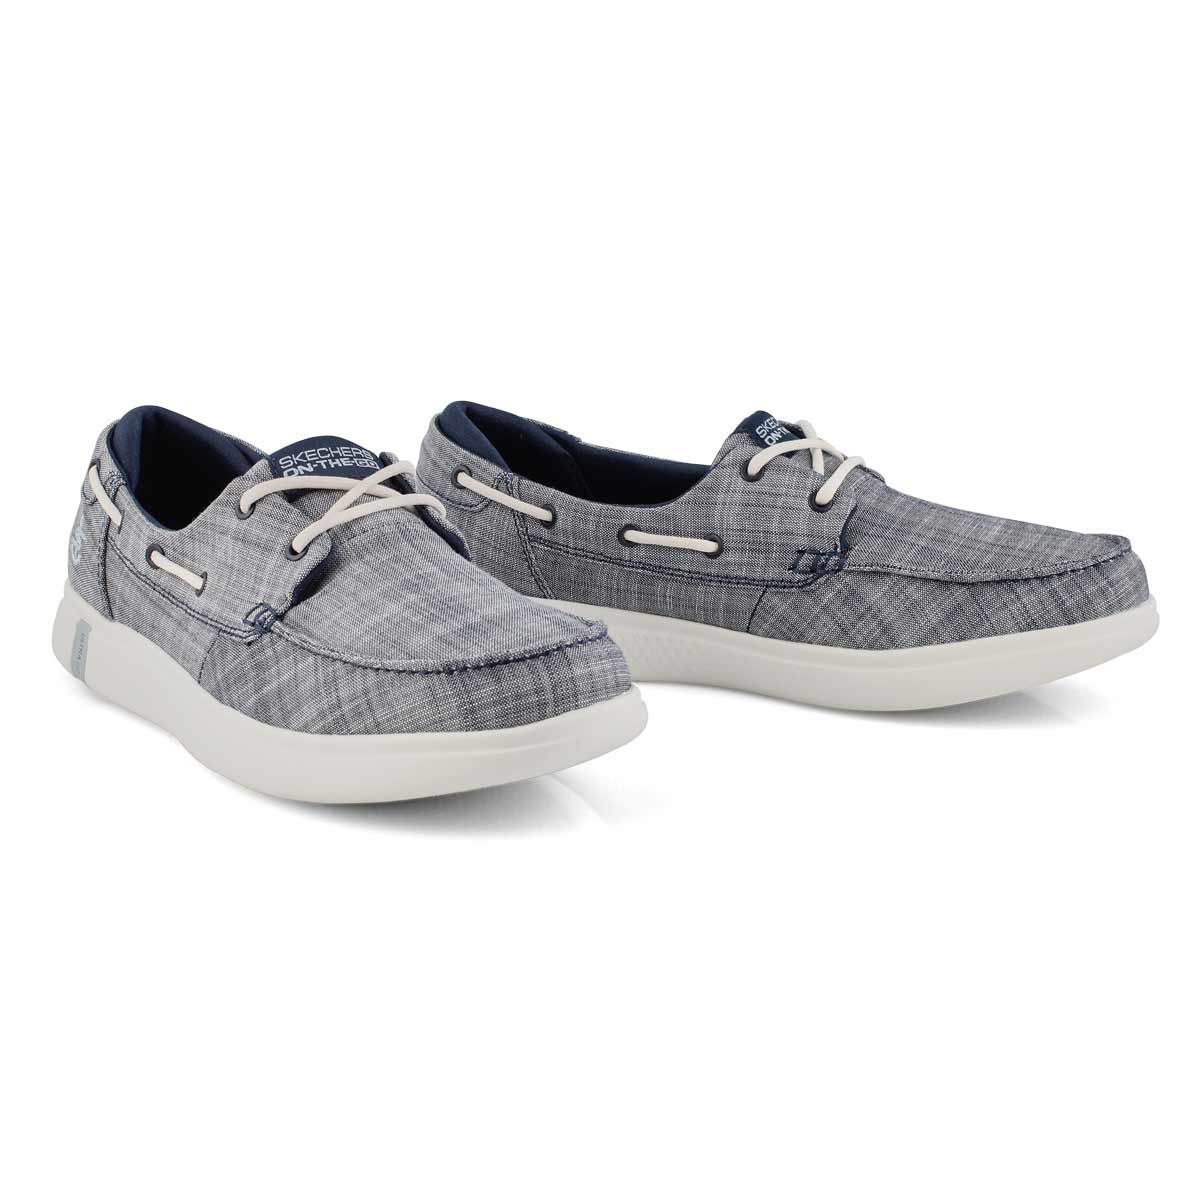 Lds Glide Ultra Waves navy boat shoe